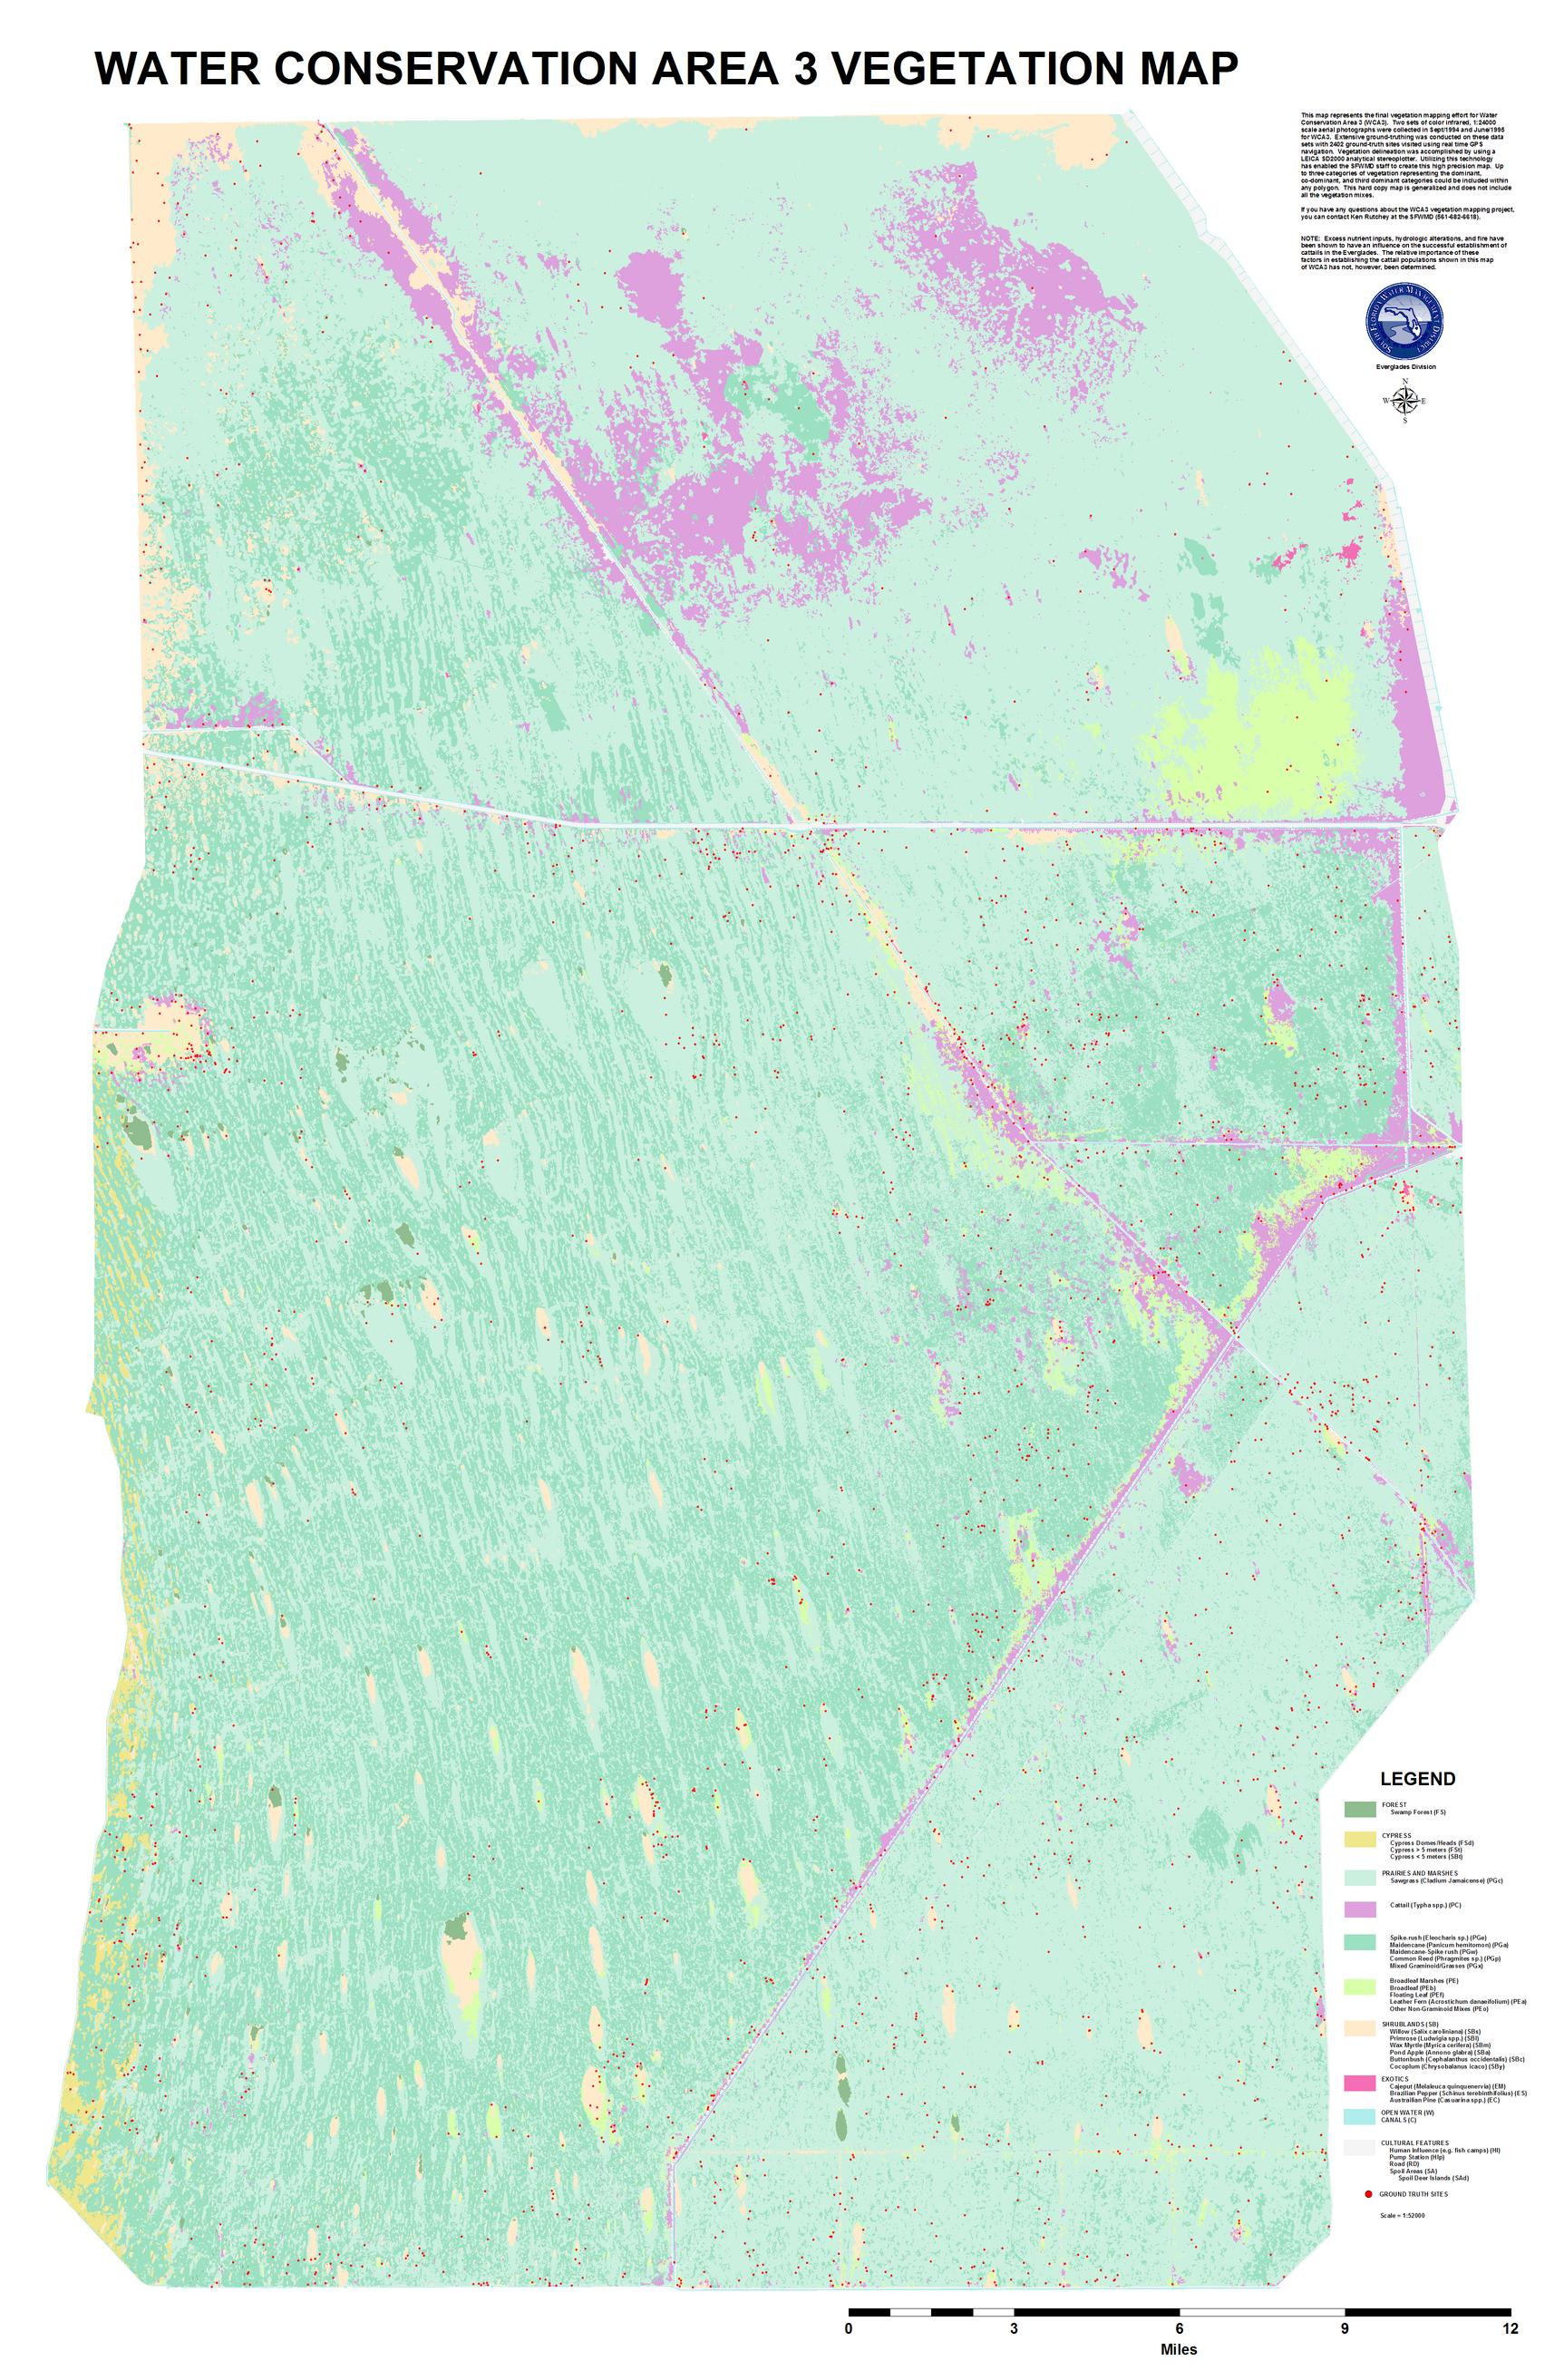 Vegetation map of Water Conservation Area 3, Everglades, South Florida (1/2 scale)